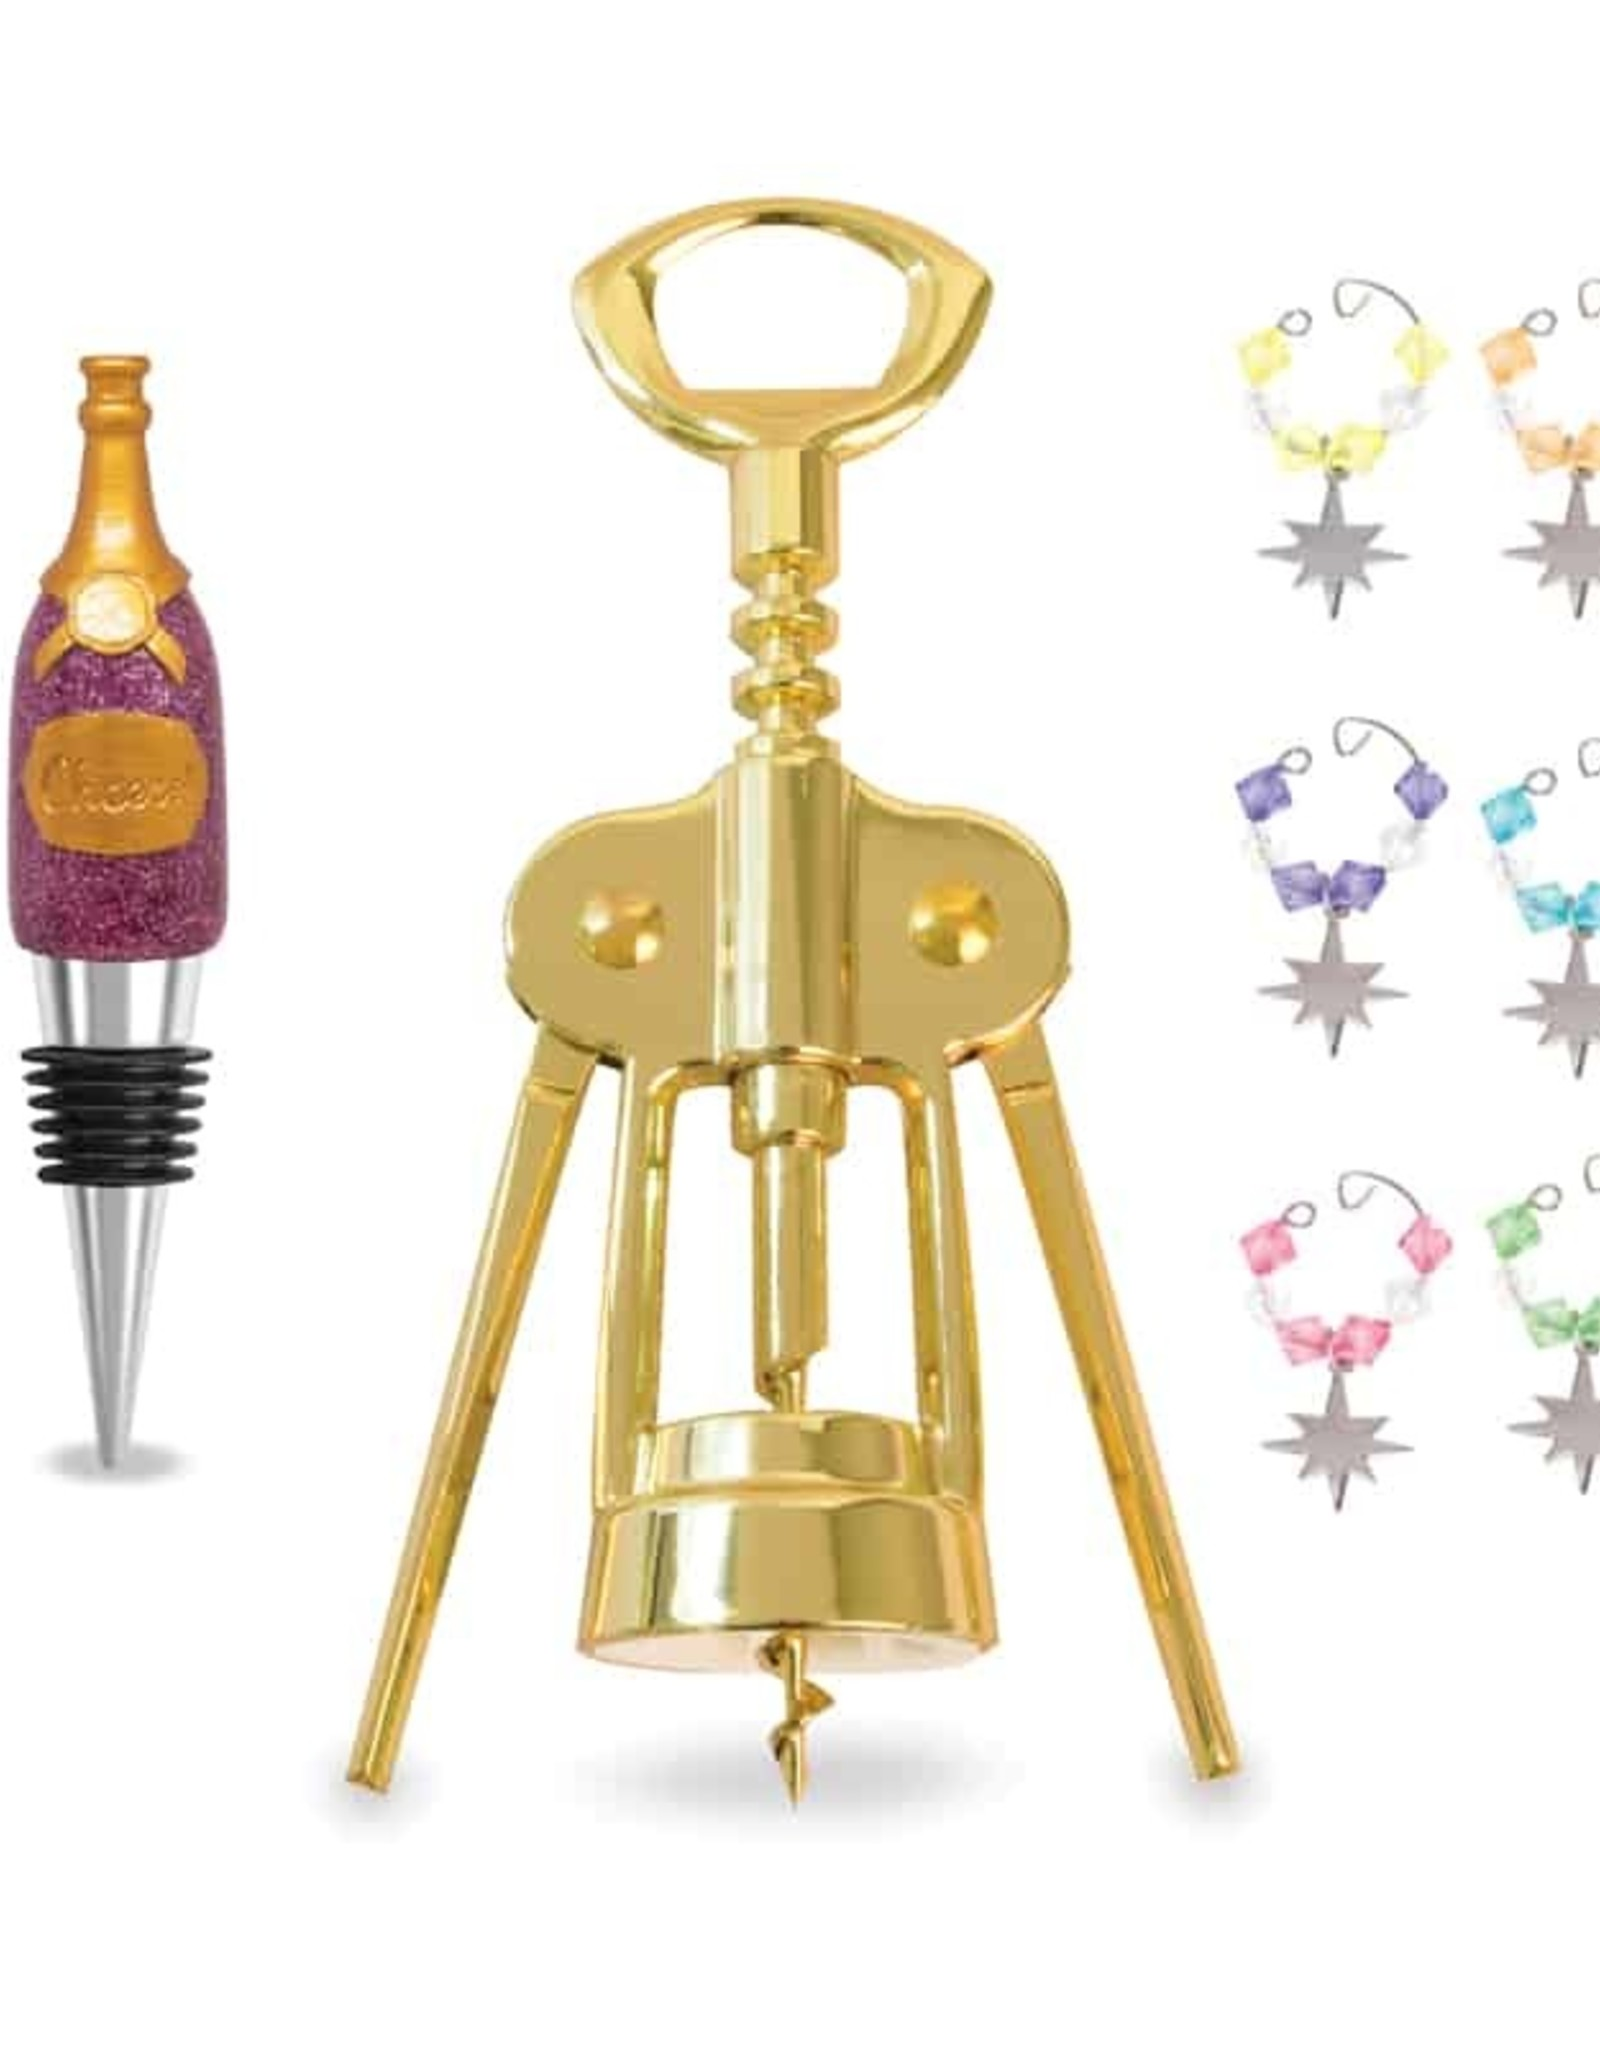 Wine Set - Party Lux Champagne